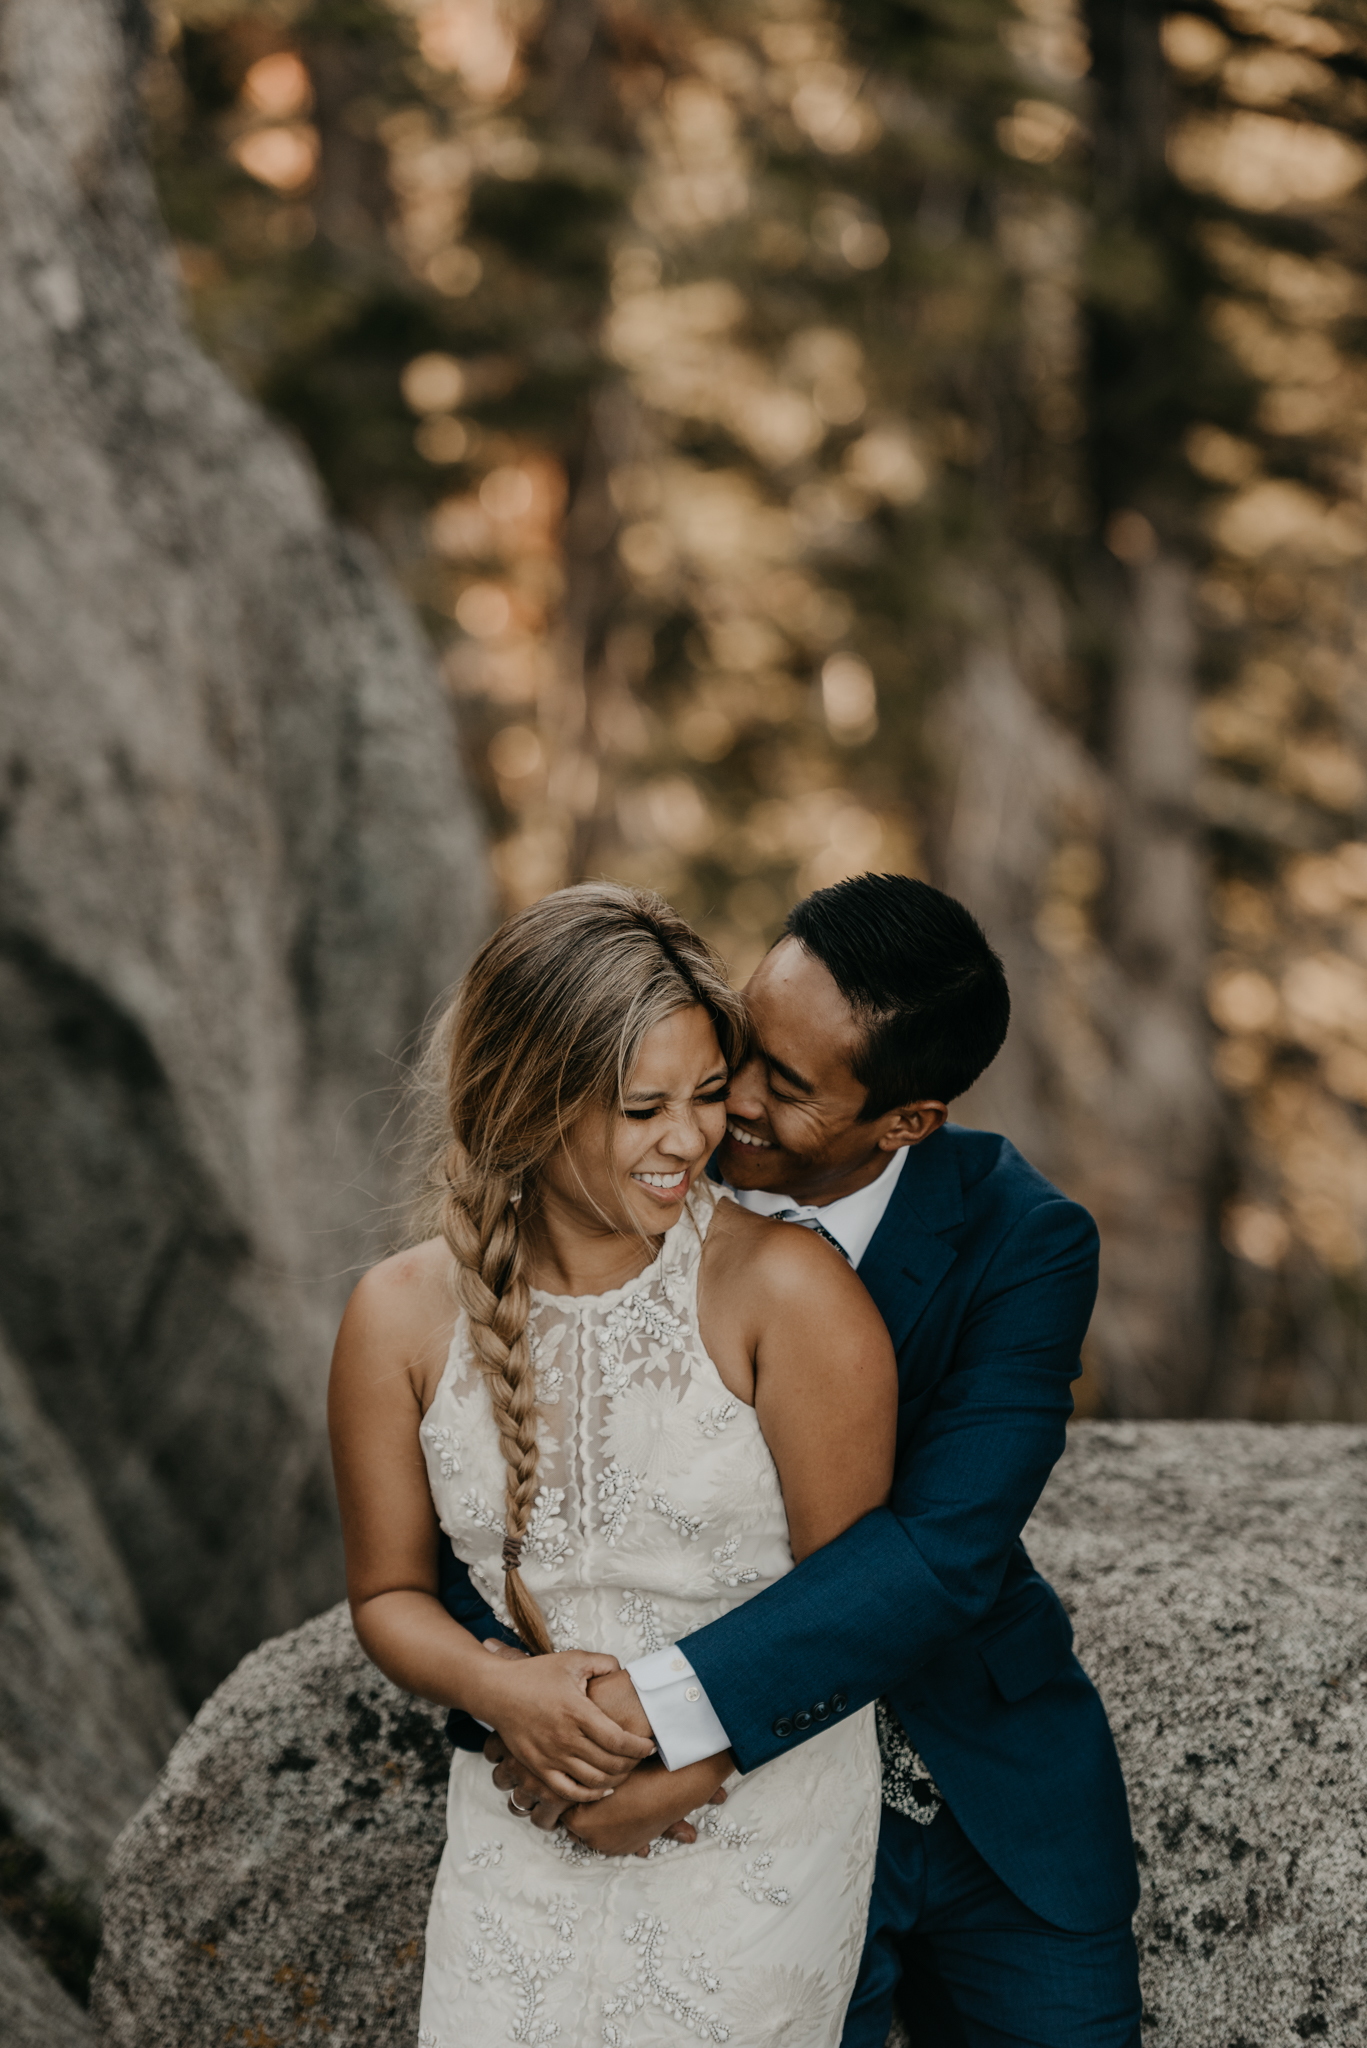 © Isaiah + Taylor Photography - Yosemite Nationanl Park Elopement Photographer - Evergreen Lodge Wedding-035.jpg